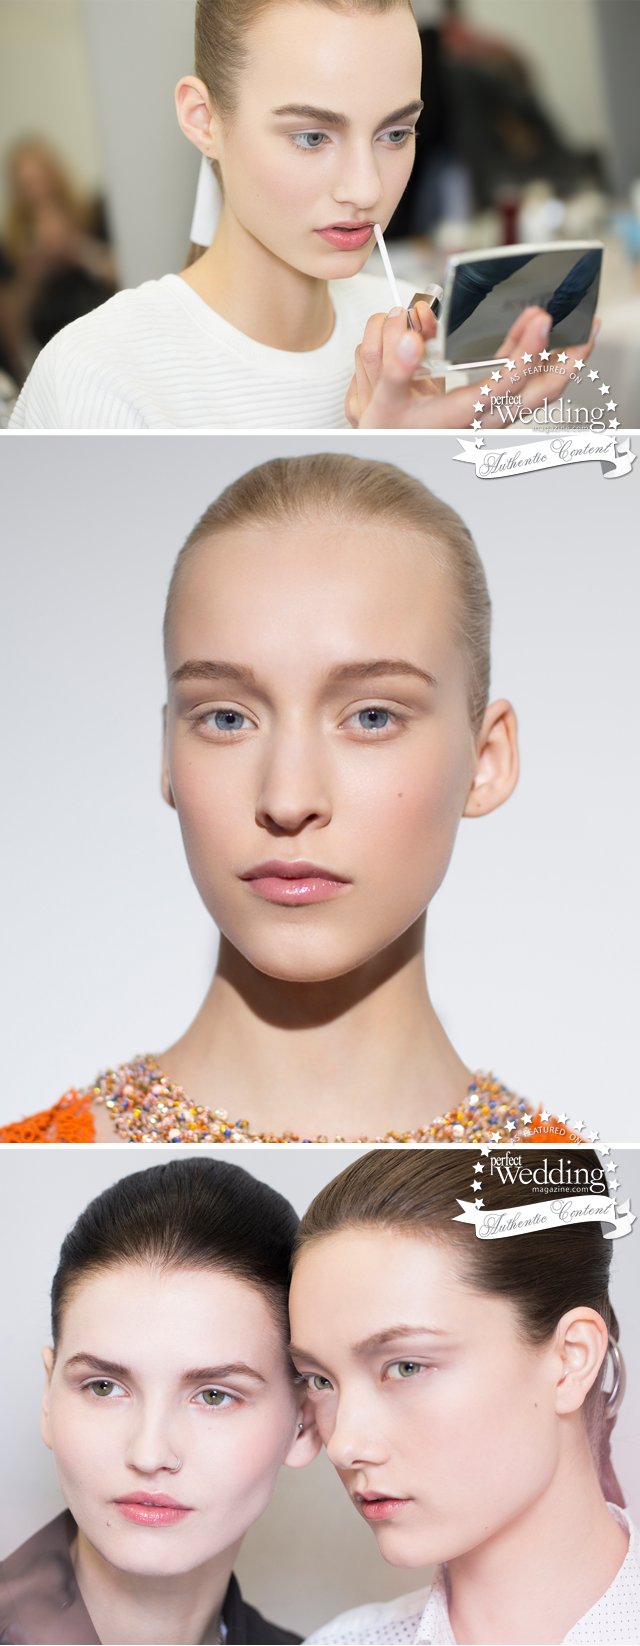 Dior Beauty, Dior Haute Couture, Bridal Beauty trends, Perfect Wedding Magazine